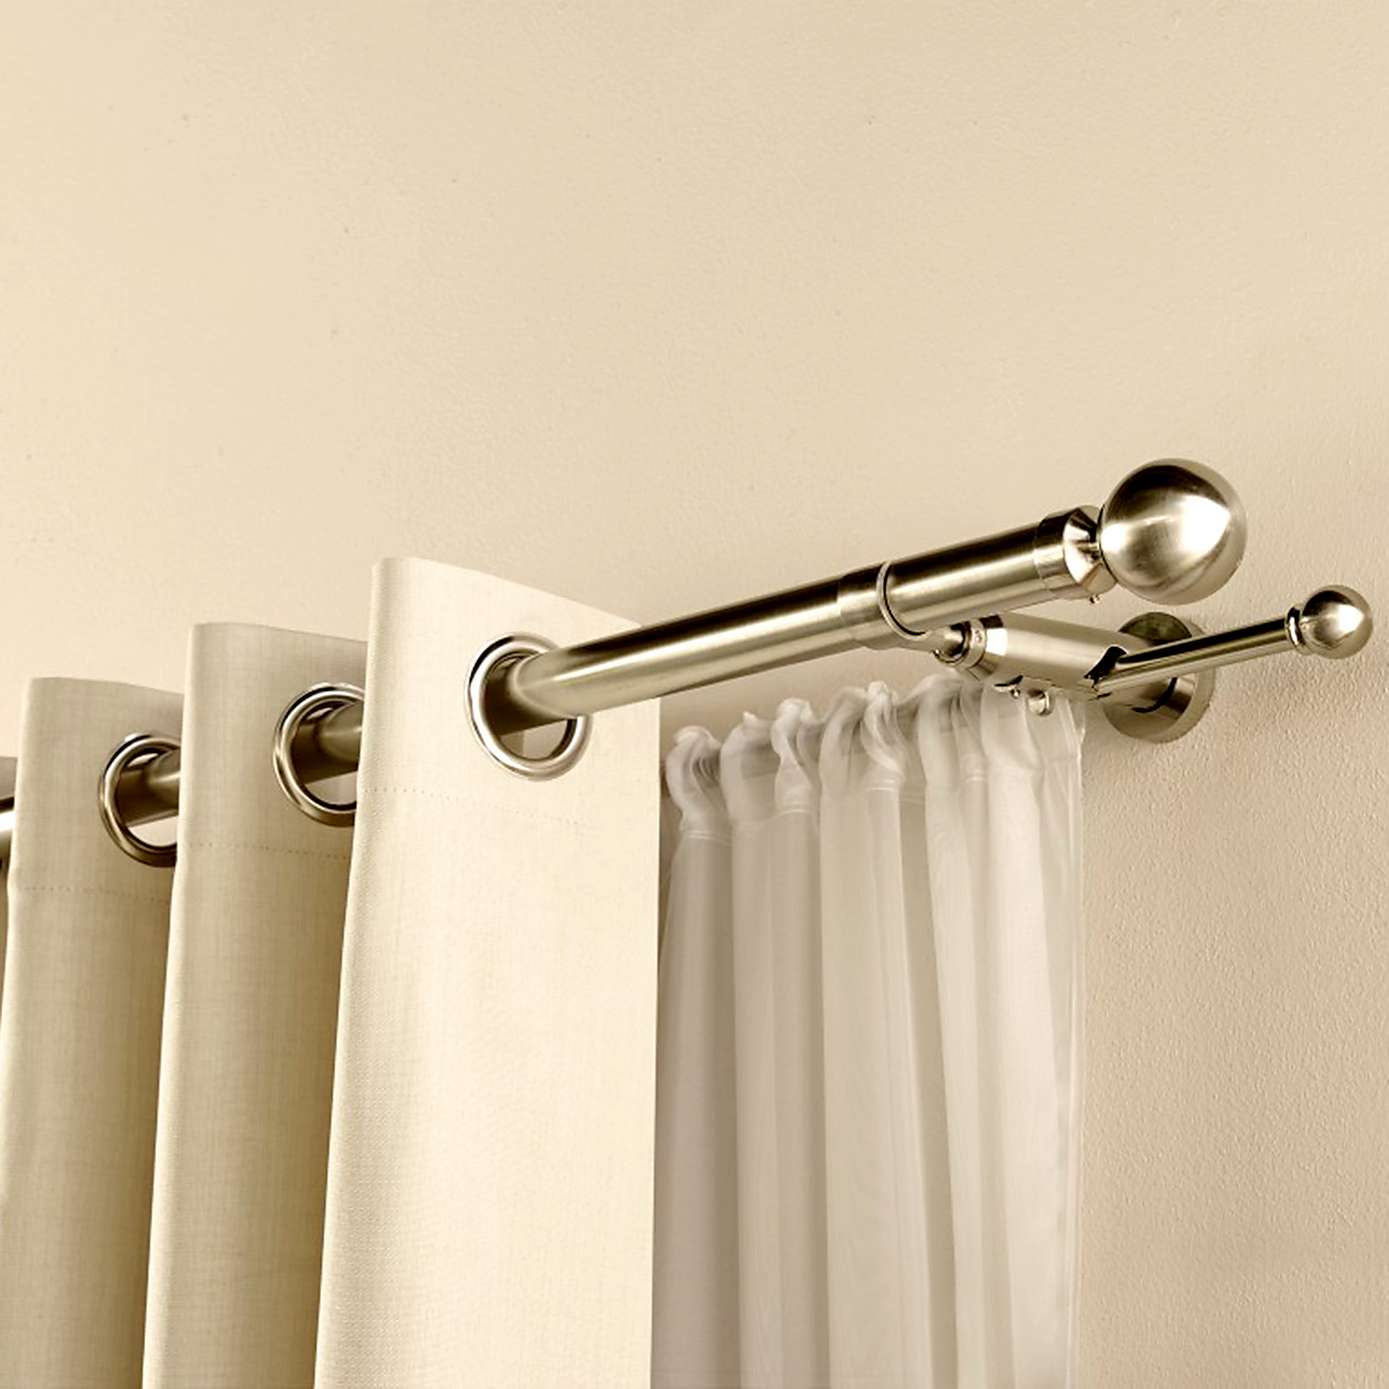 Stainless Steel Double Shower Curtain Rod • Shower Curtains Ideas